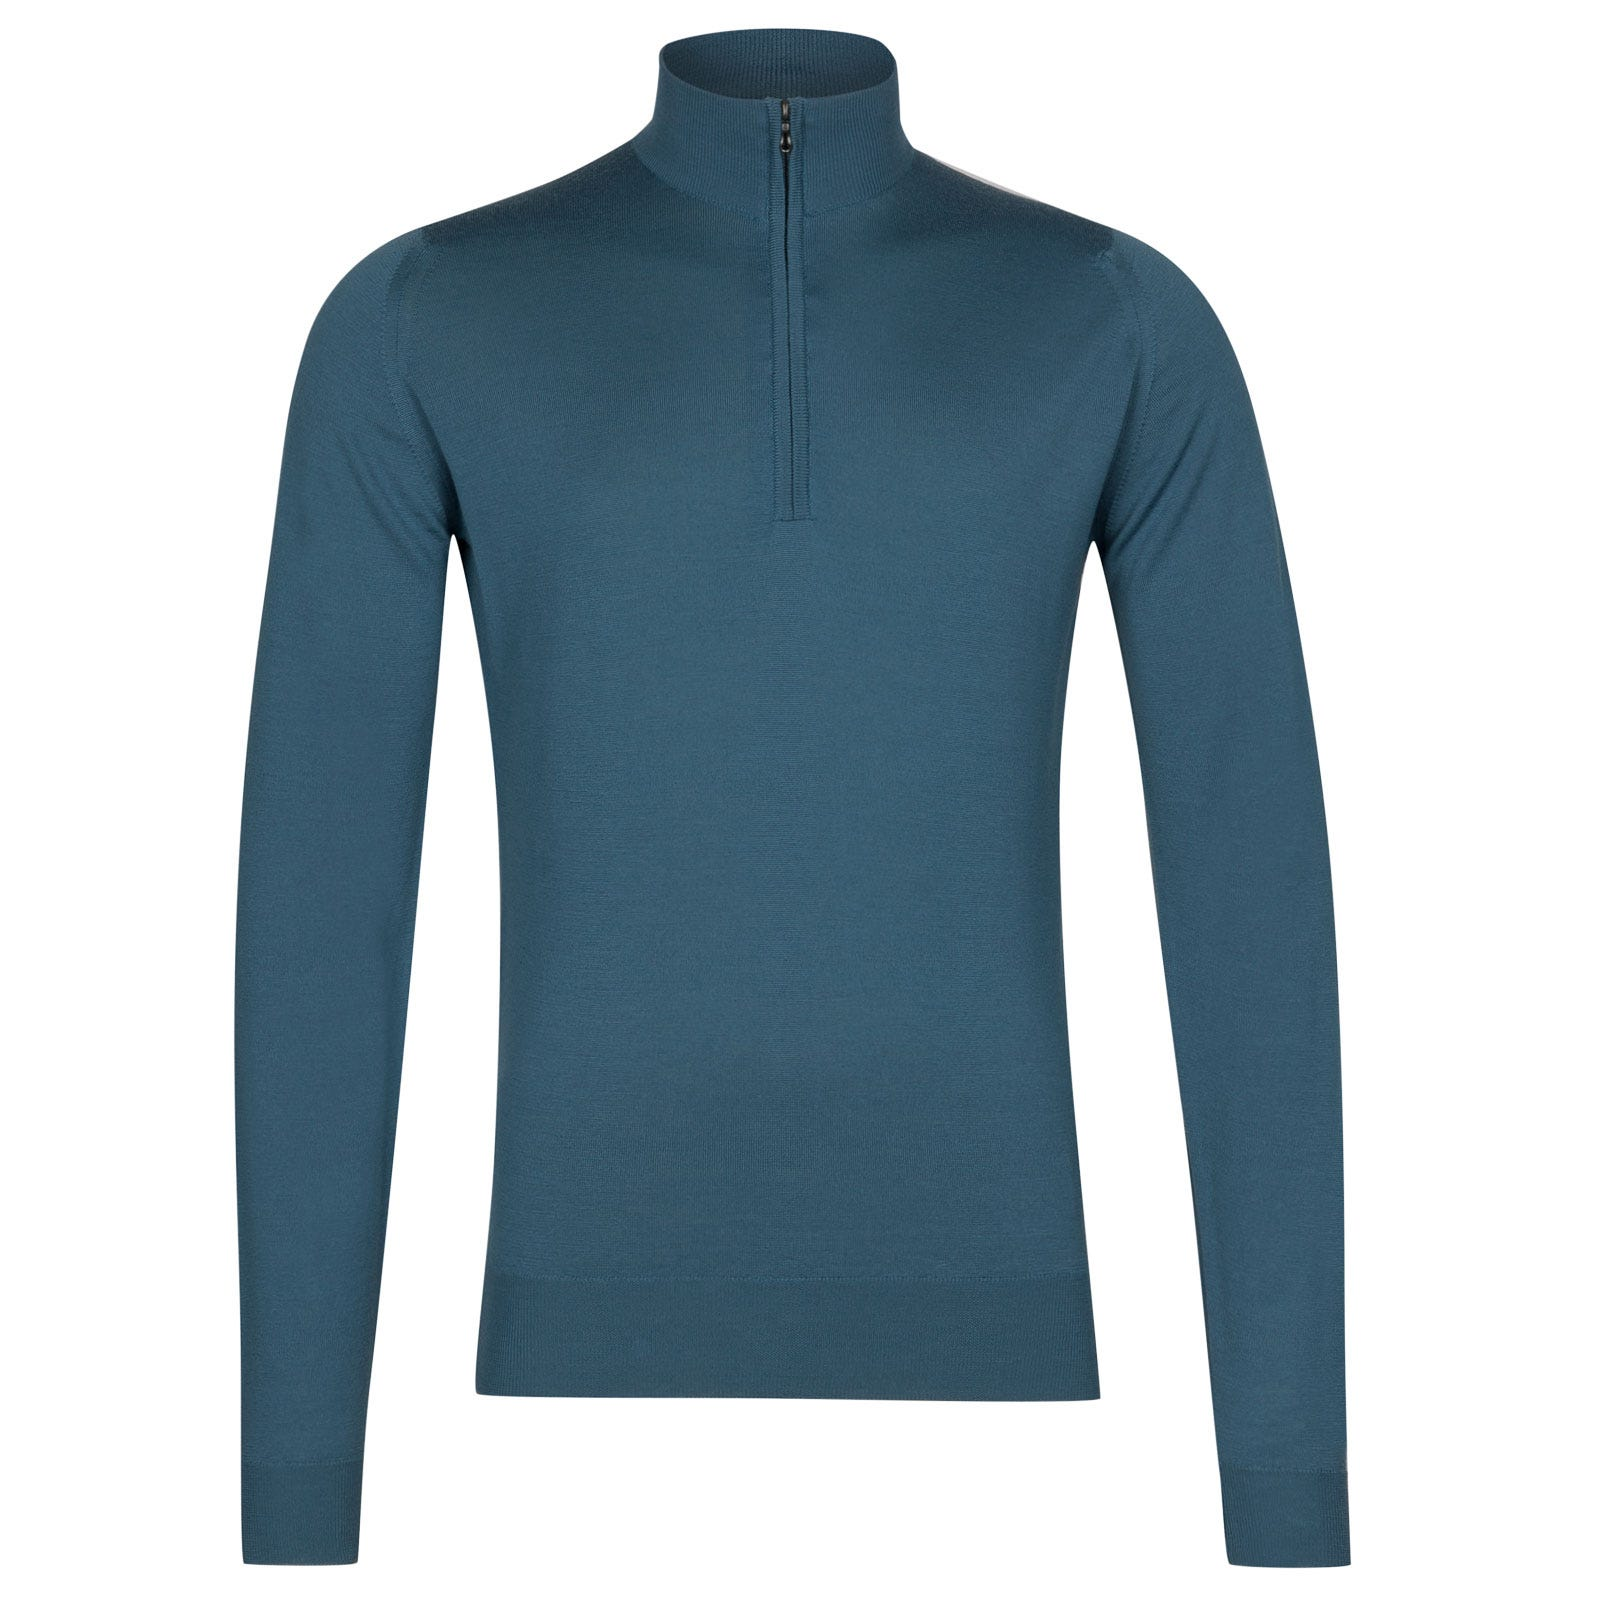 John Smedley Barrow Merino Wool Pullover in Bias Blue-S